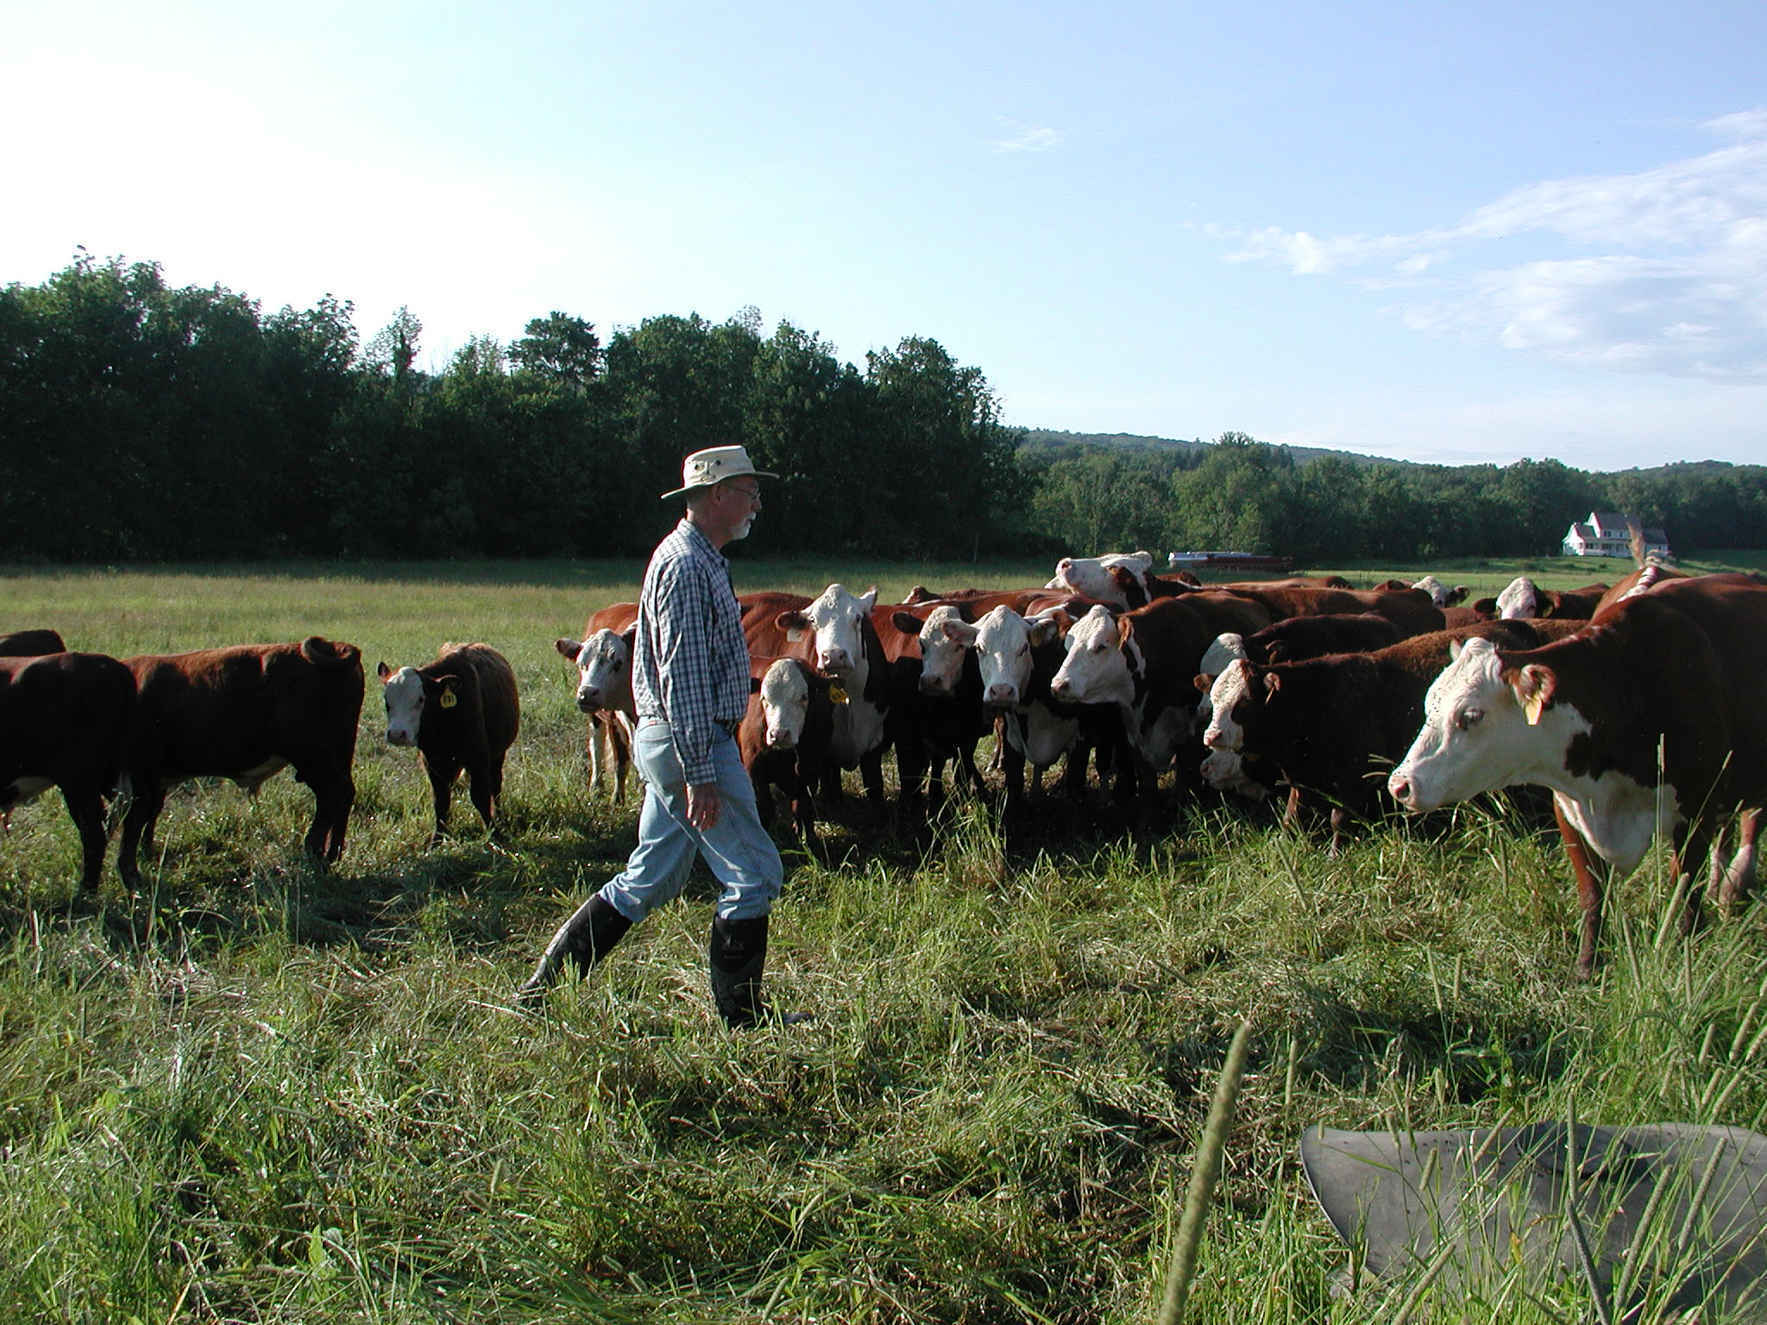 Renew your membership and share your thoughts to keep farming strong in the Rondout Valley! image